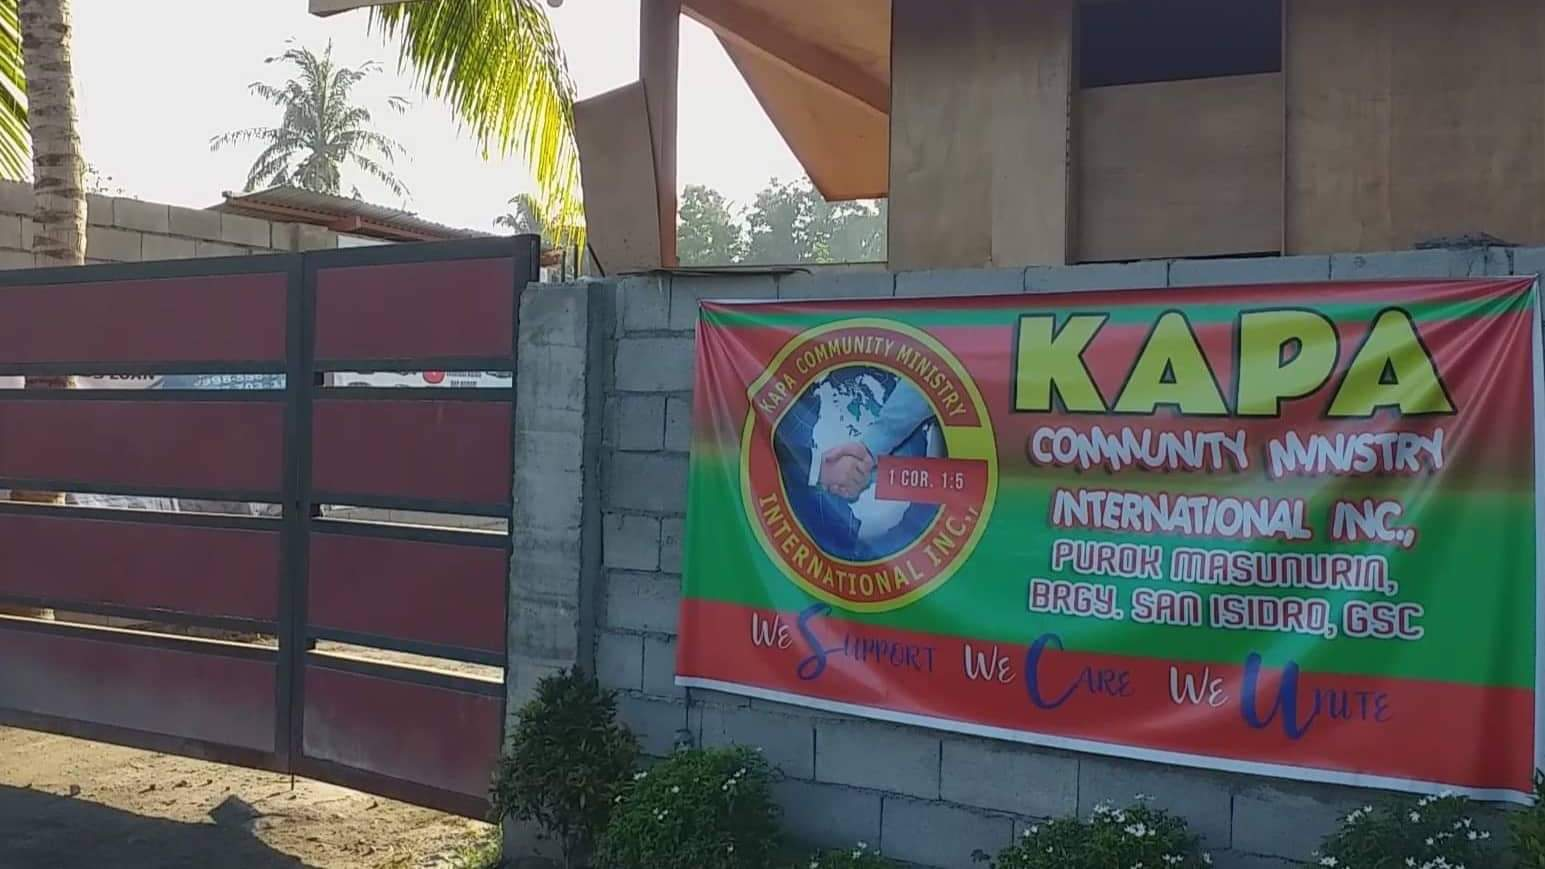 KAPA KABUS OFFICES GENSAN AND SARANGANI 1